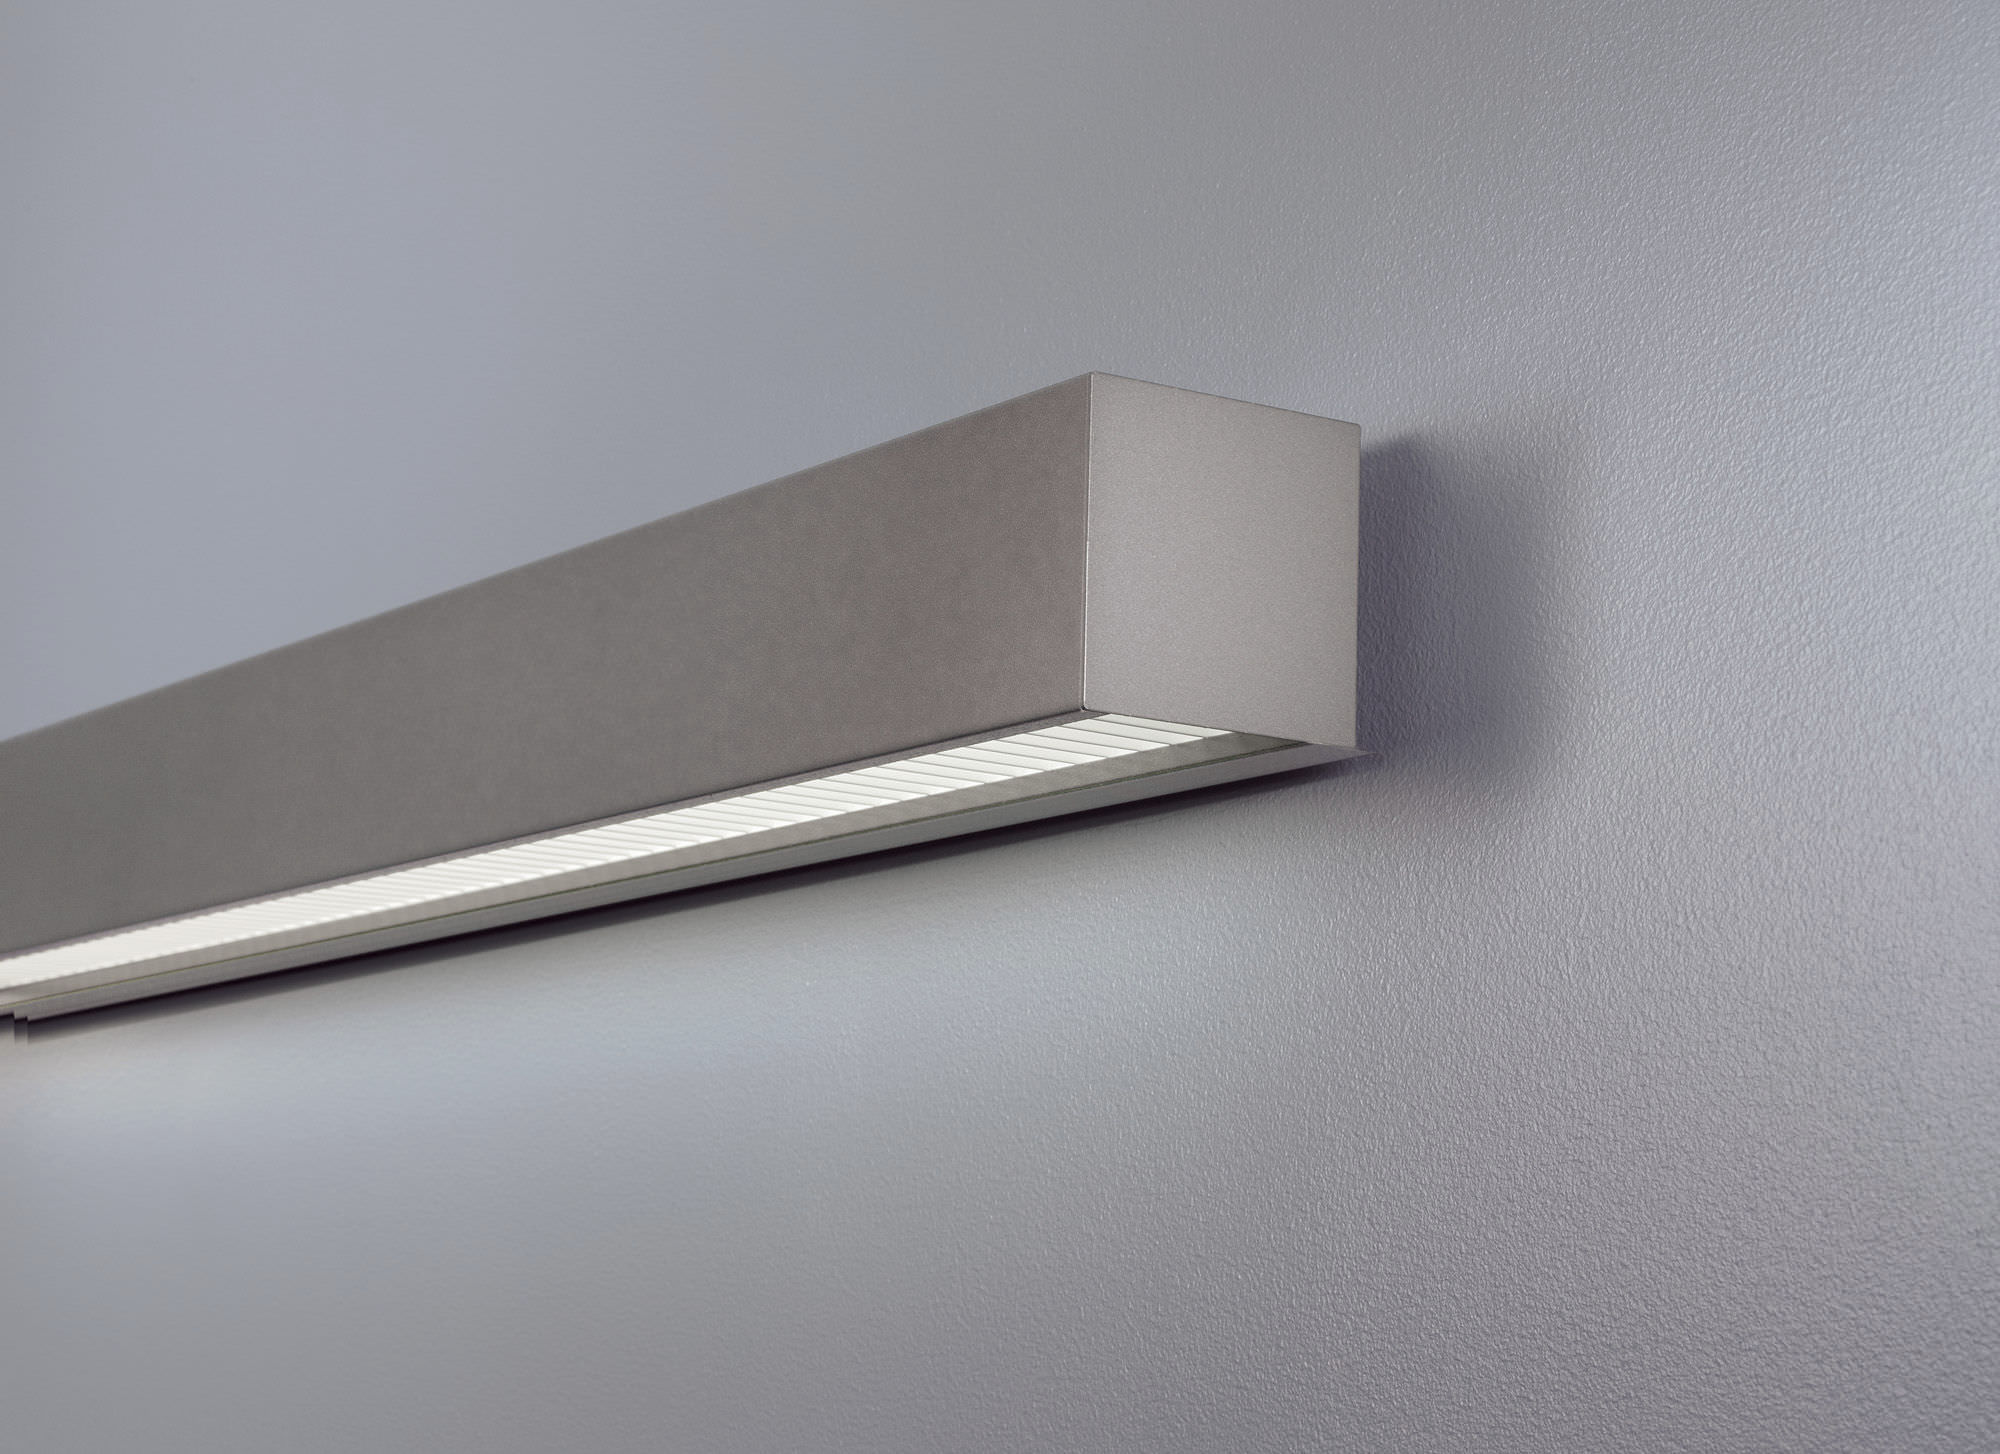 Wall Mounted Tv Fixtures : Timeless Wall mounted fluorescent light fixtures Warisan Lighting